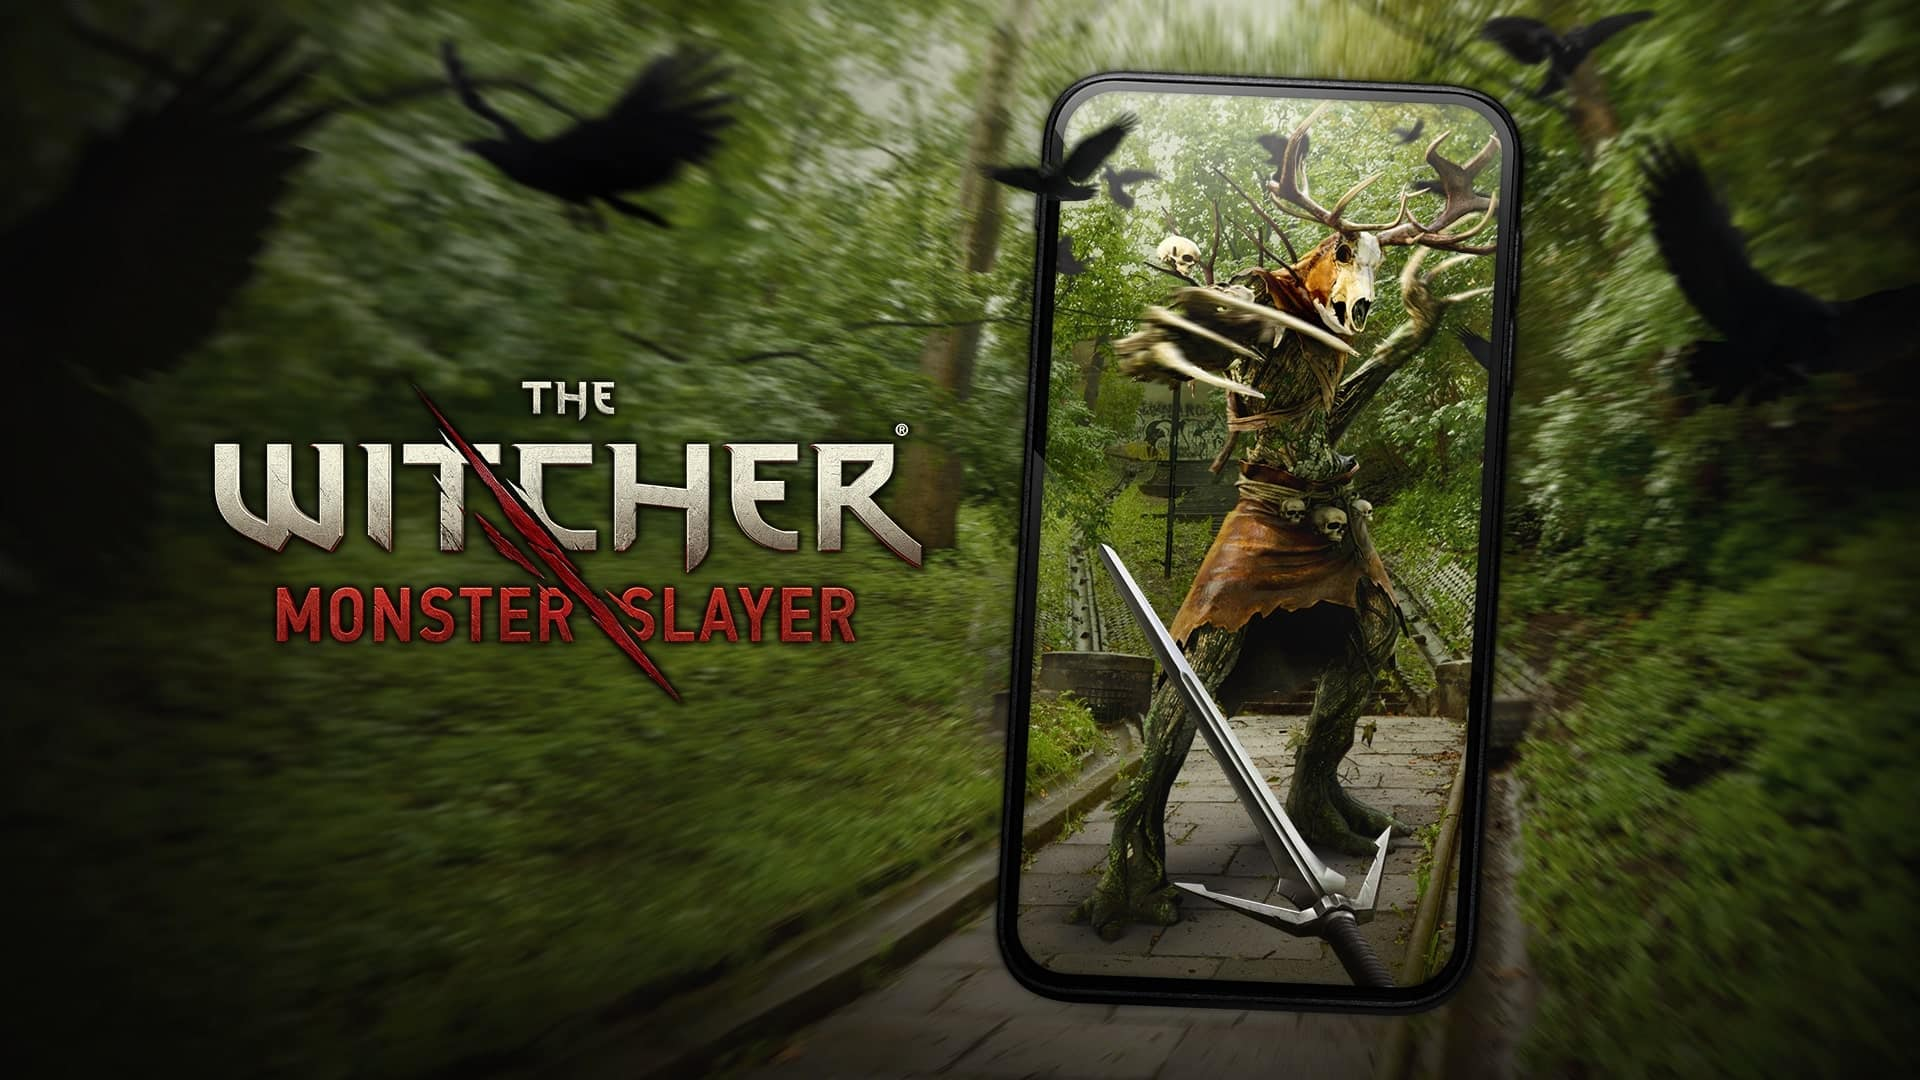 the witcher monster slayer apk